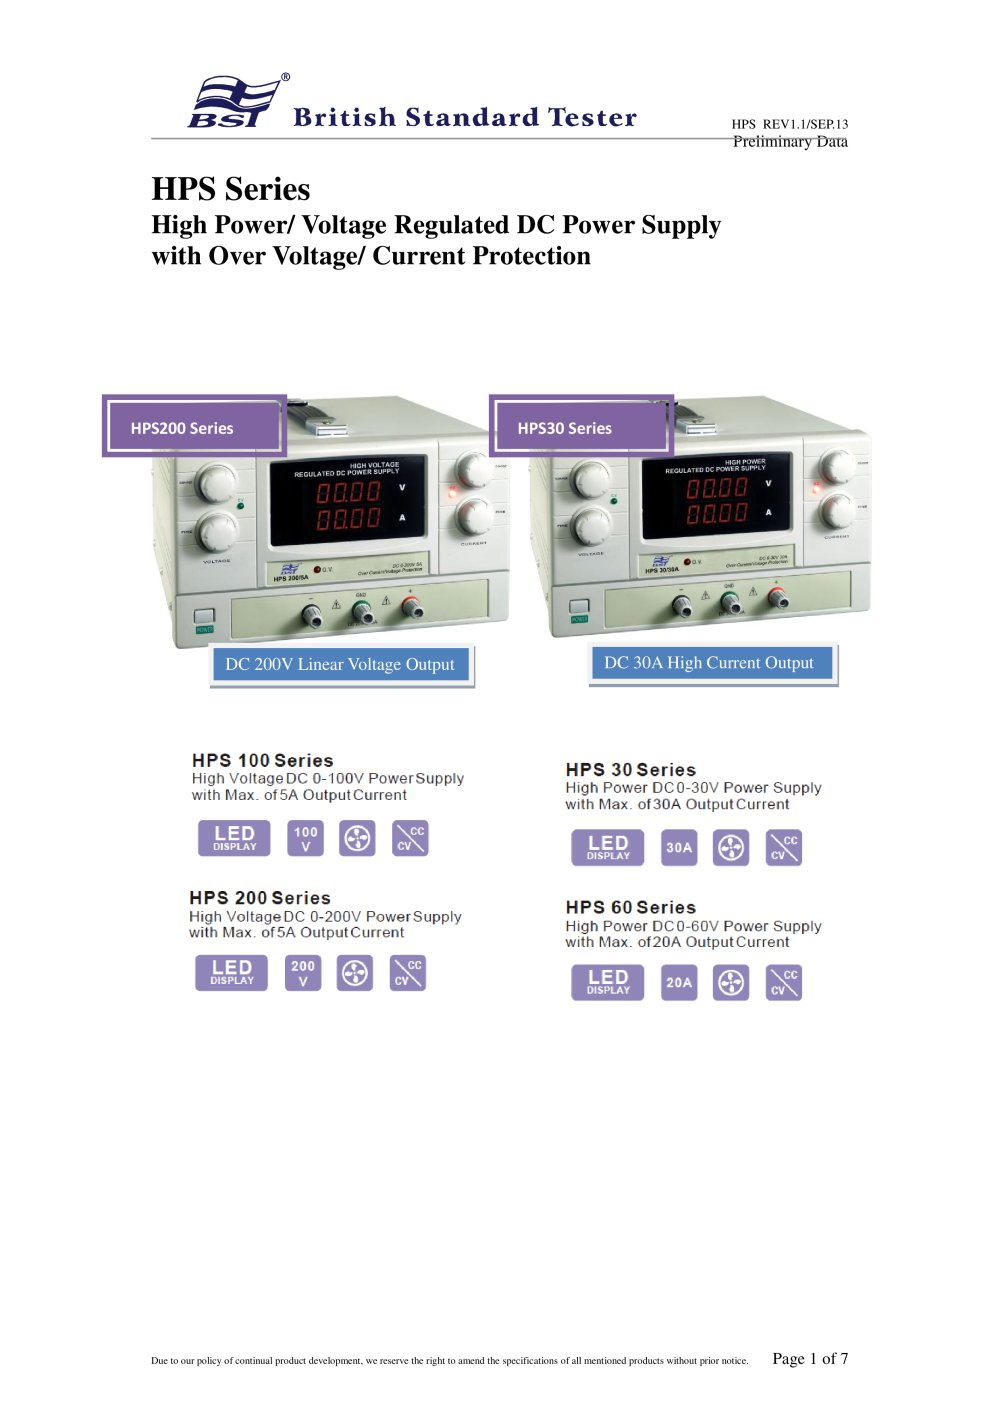 Hps Series High Power Voltage Regulated Dc Supply With Over Current Protection 1 7 Pages